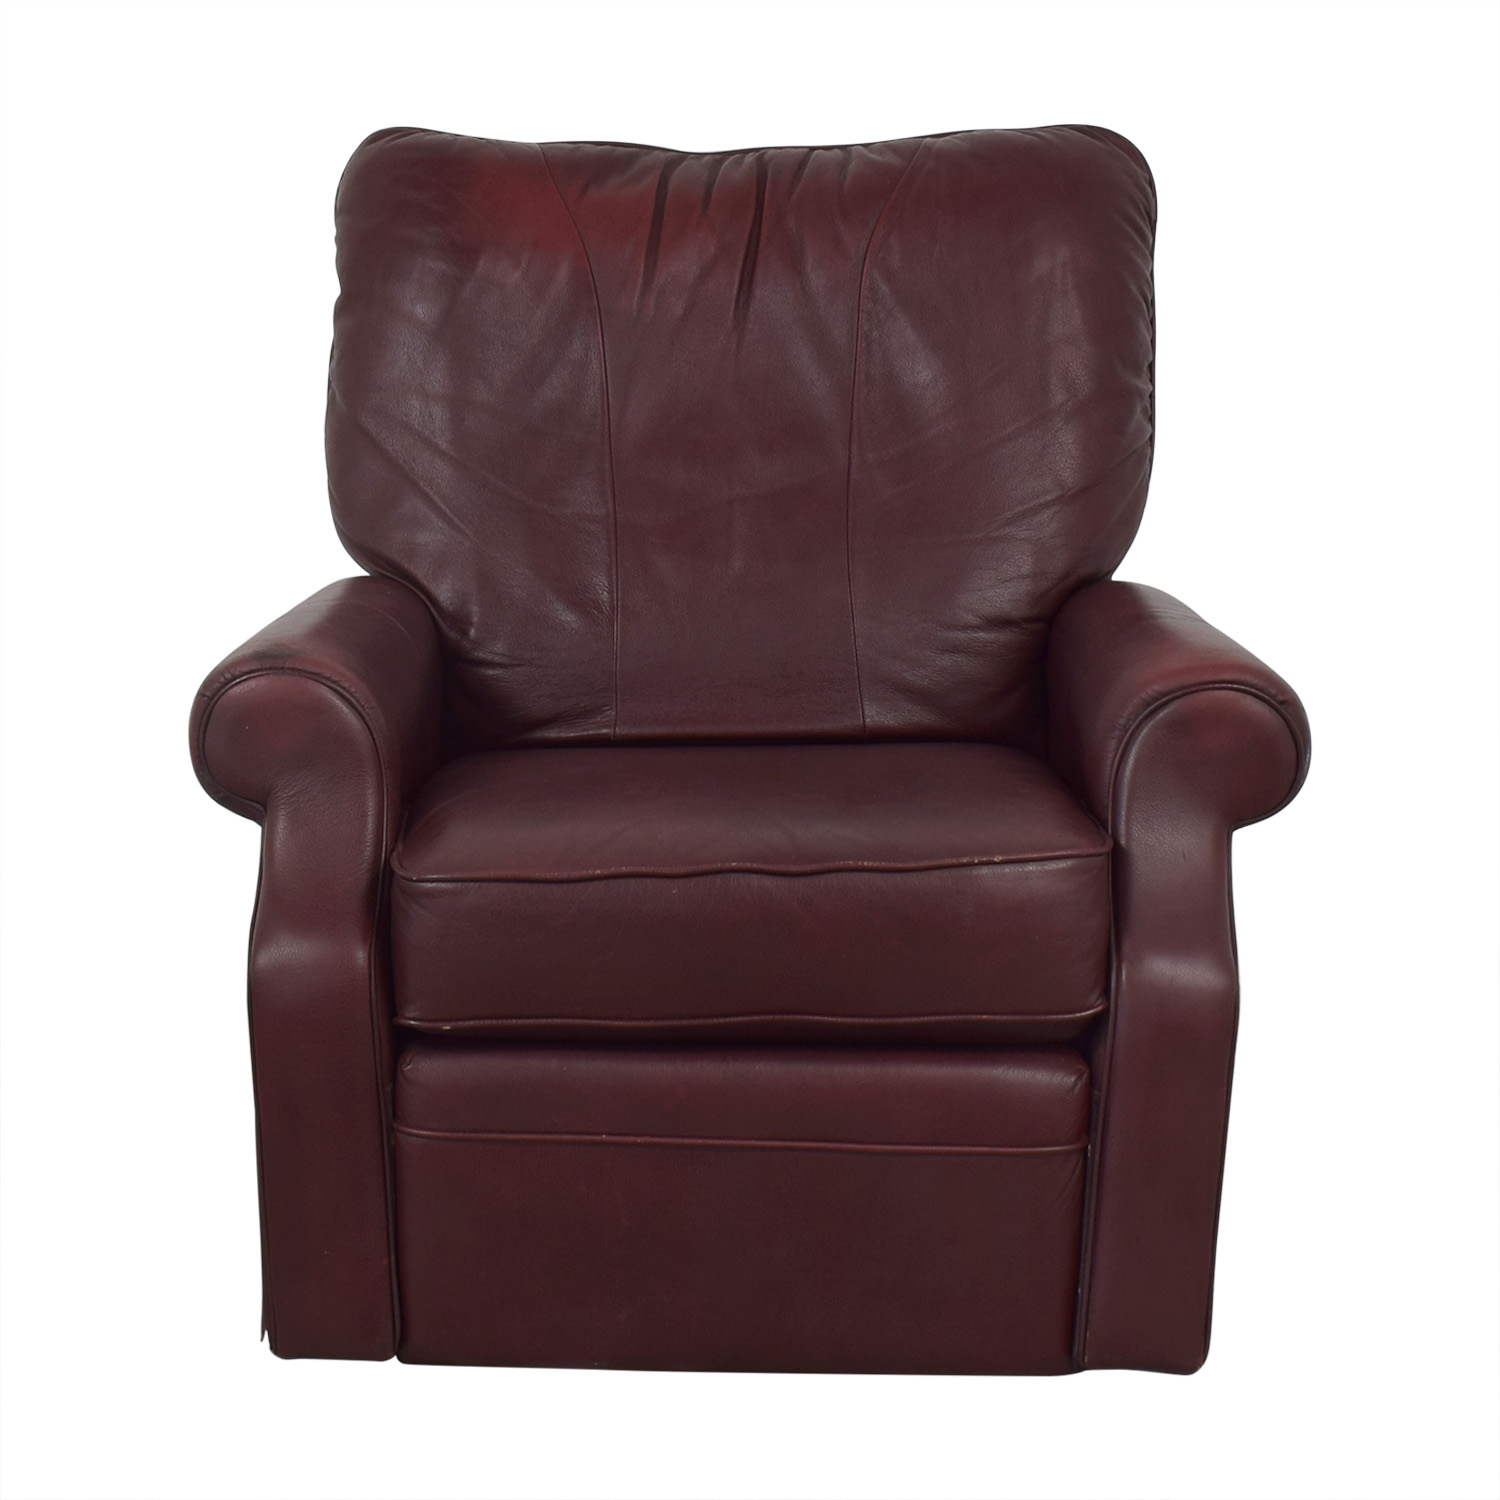 La-Z-Boy La-Z-Boy Leather Recliner for sale